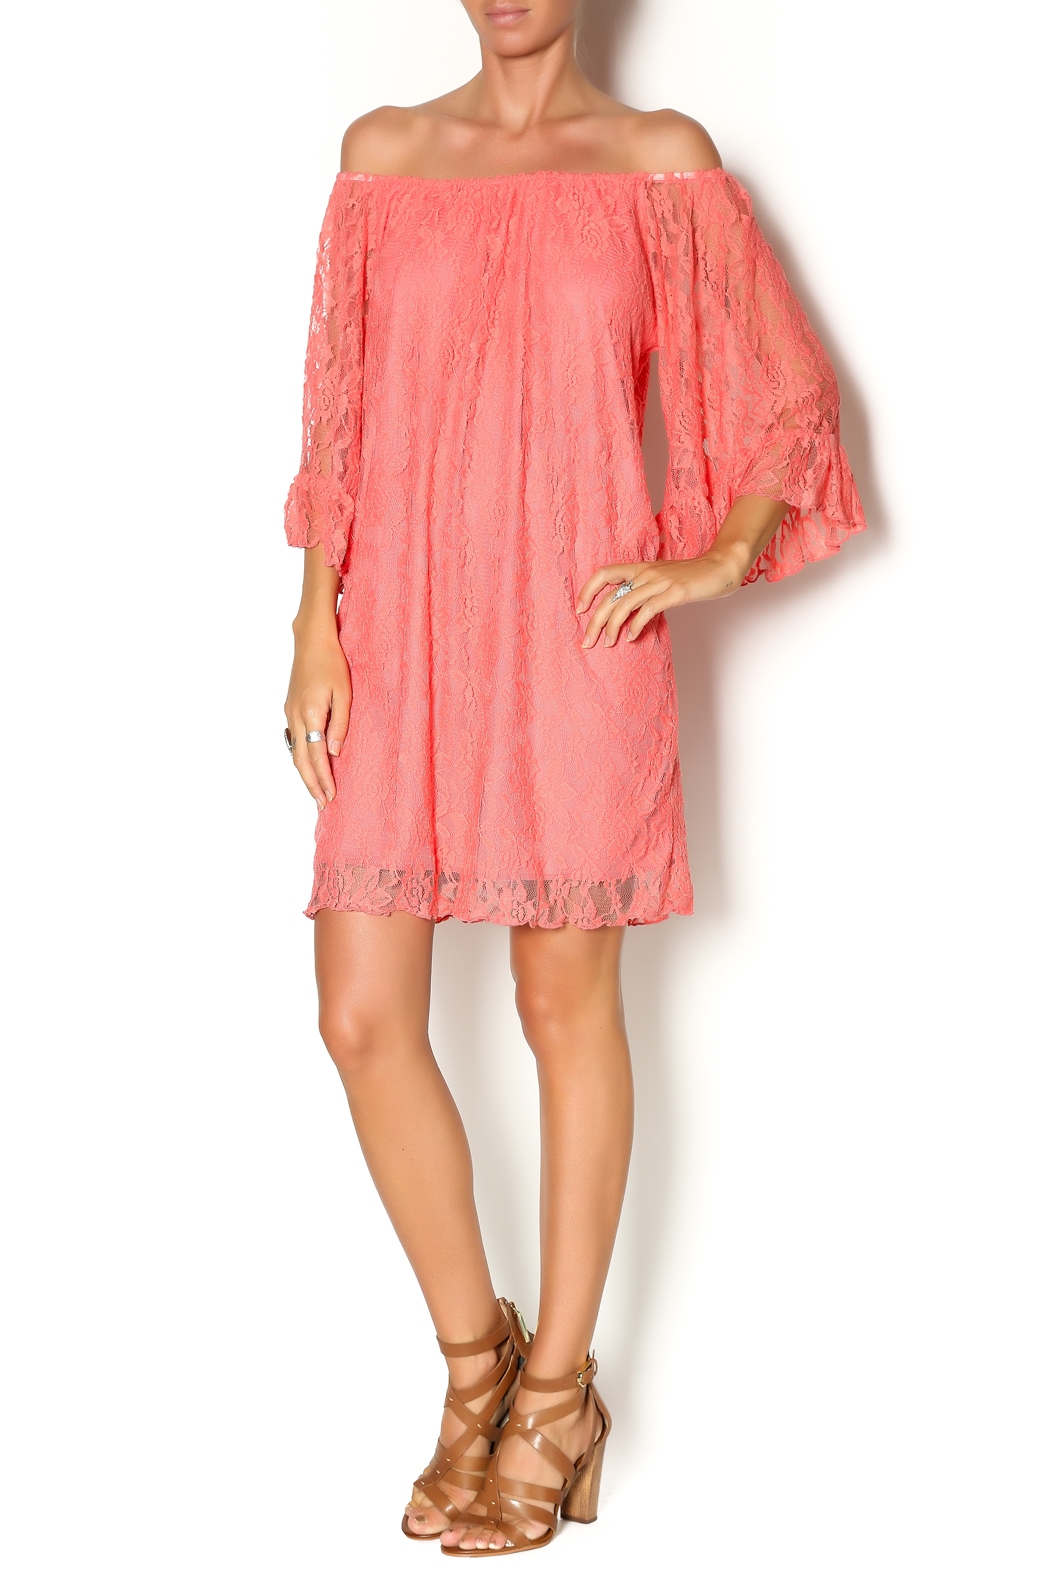 Turquoise Haven Coral Lace Dress From Texas By All About